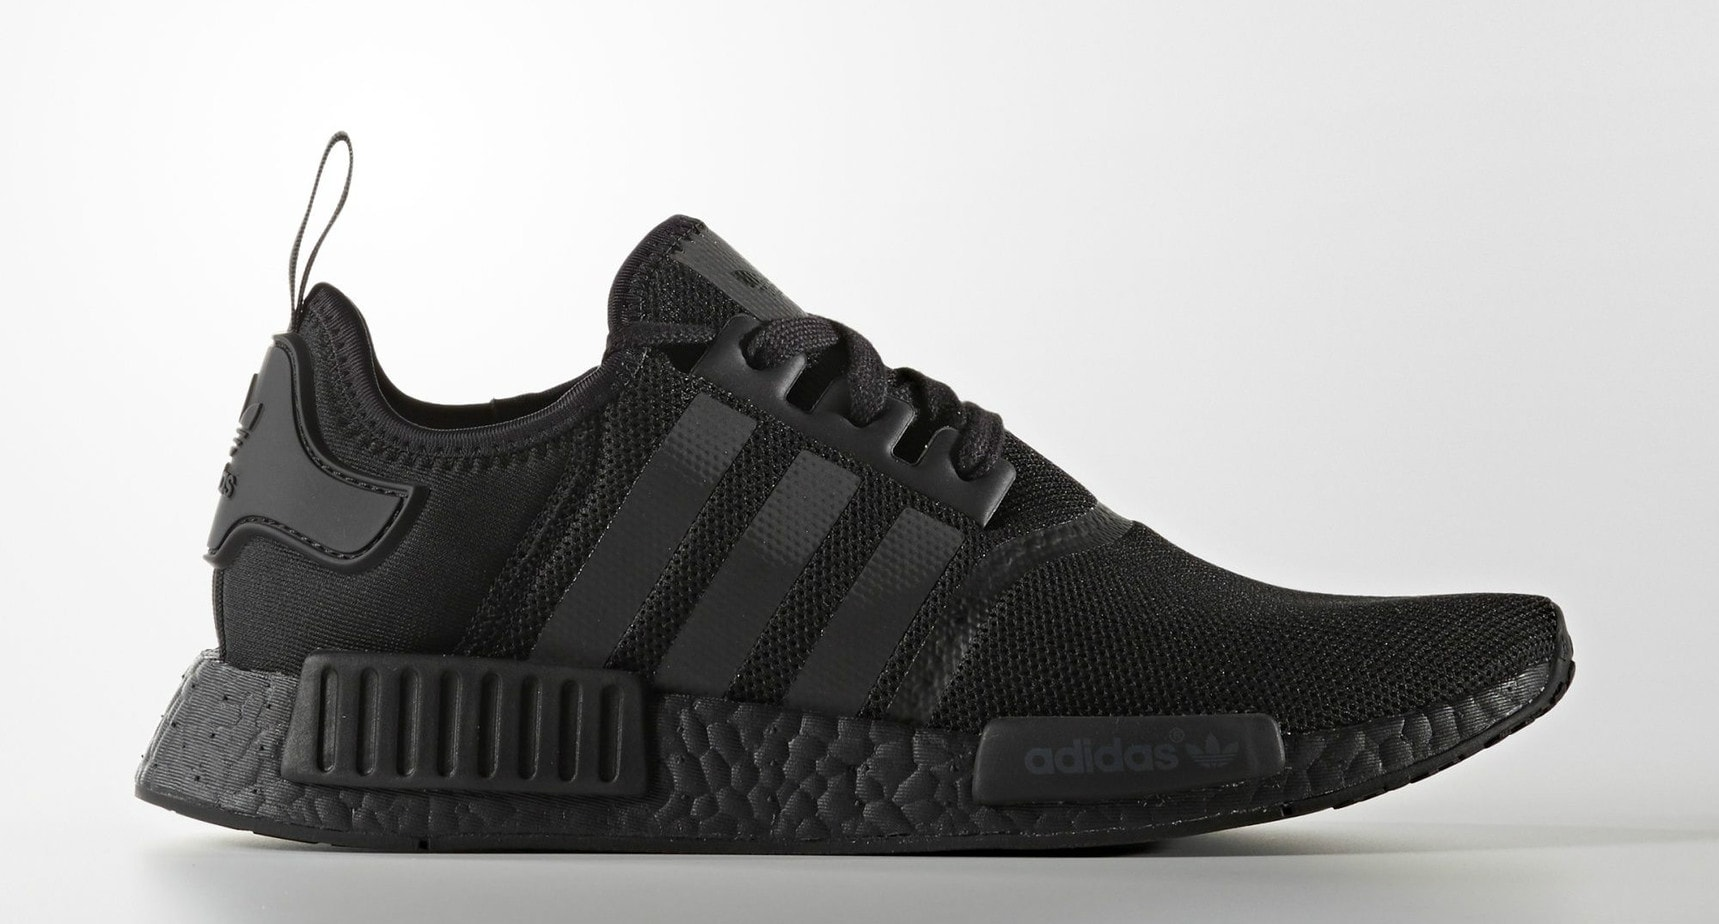 adidas yeezy boost low price adidas nmd release february